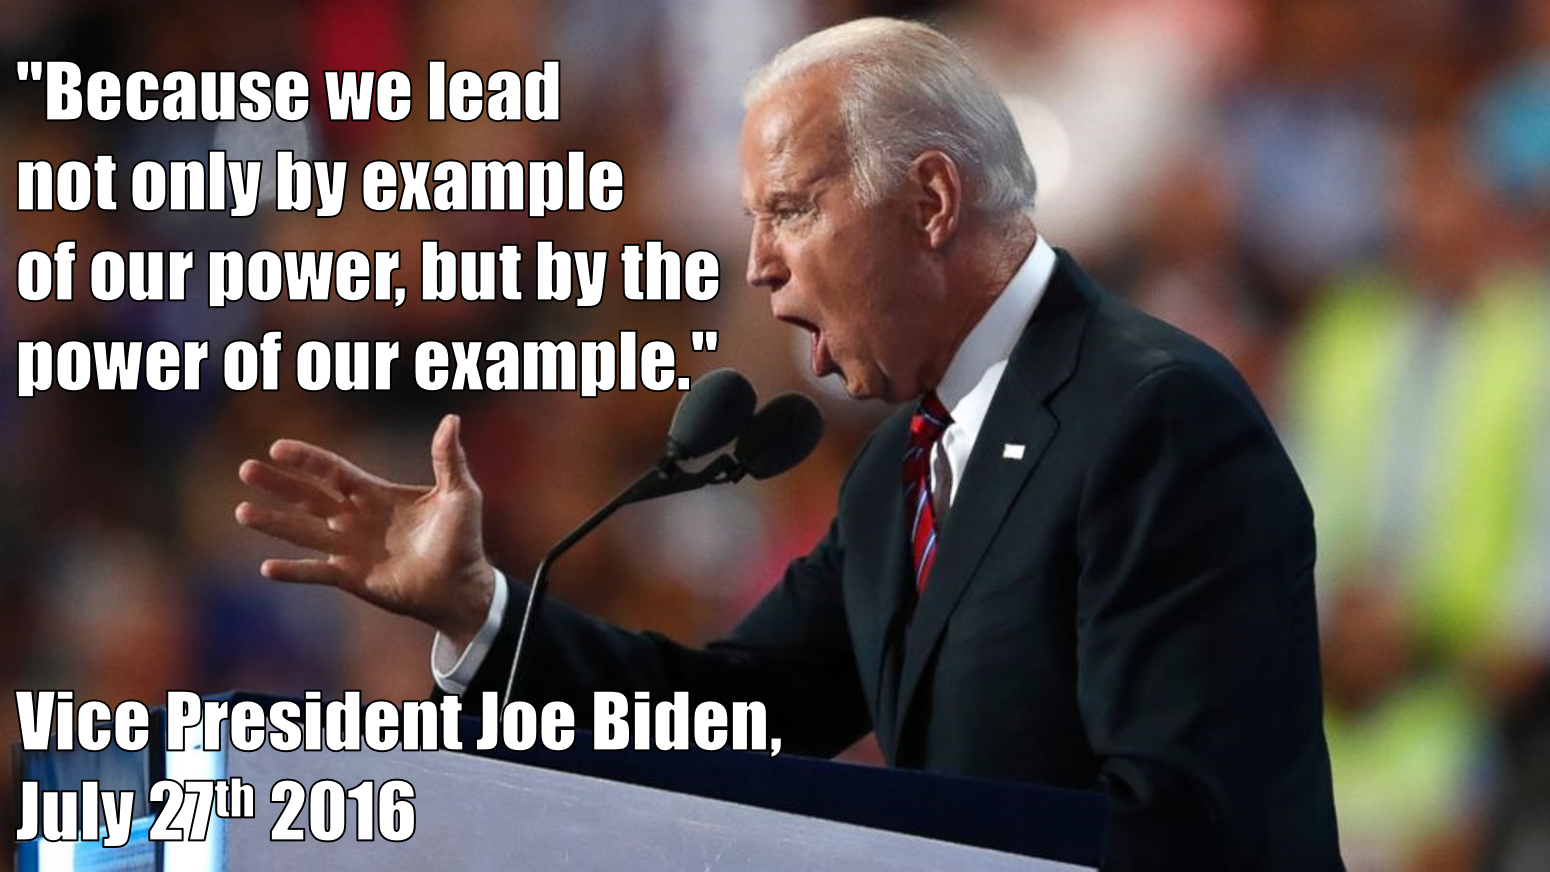 Joe Biden Dnc 2016 Quote The Power Of Our Example R Imagesofthe2010s Quotes By Famous People 2016 Quotes Powerful Quotes